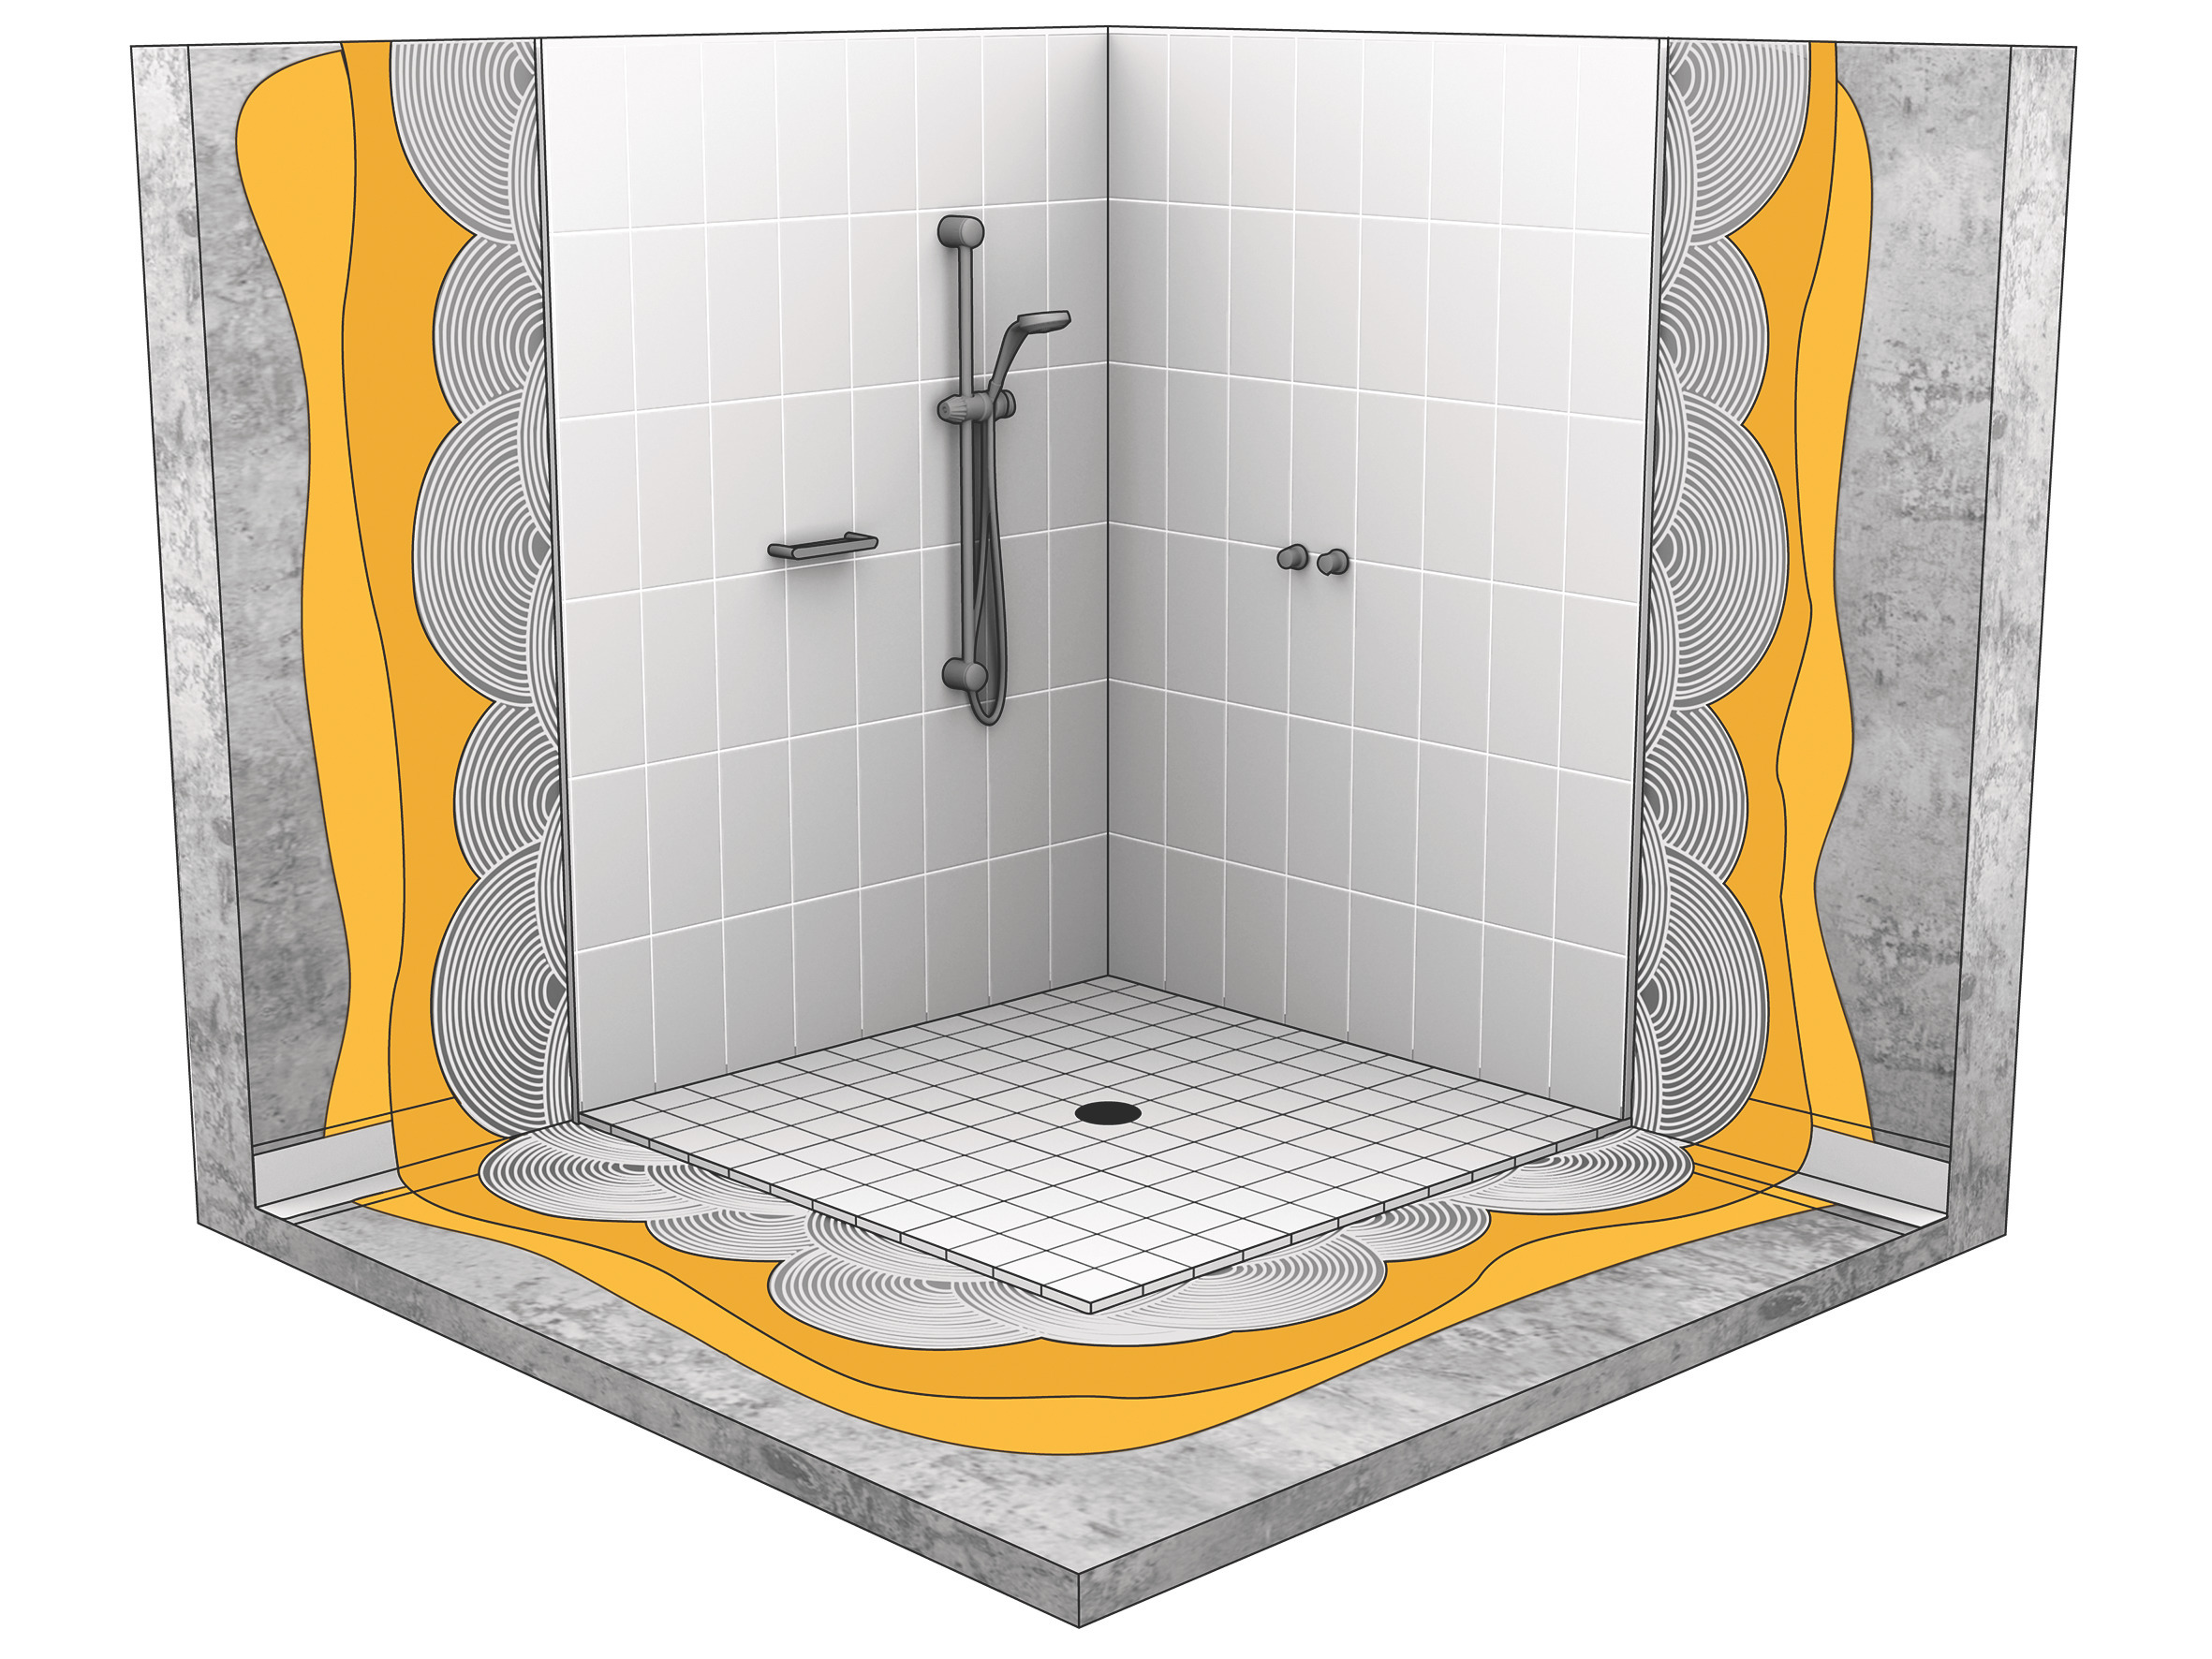 Illustration of waterproofing mortar under tiled wall and floor in shower wet room